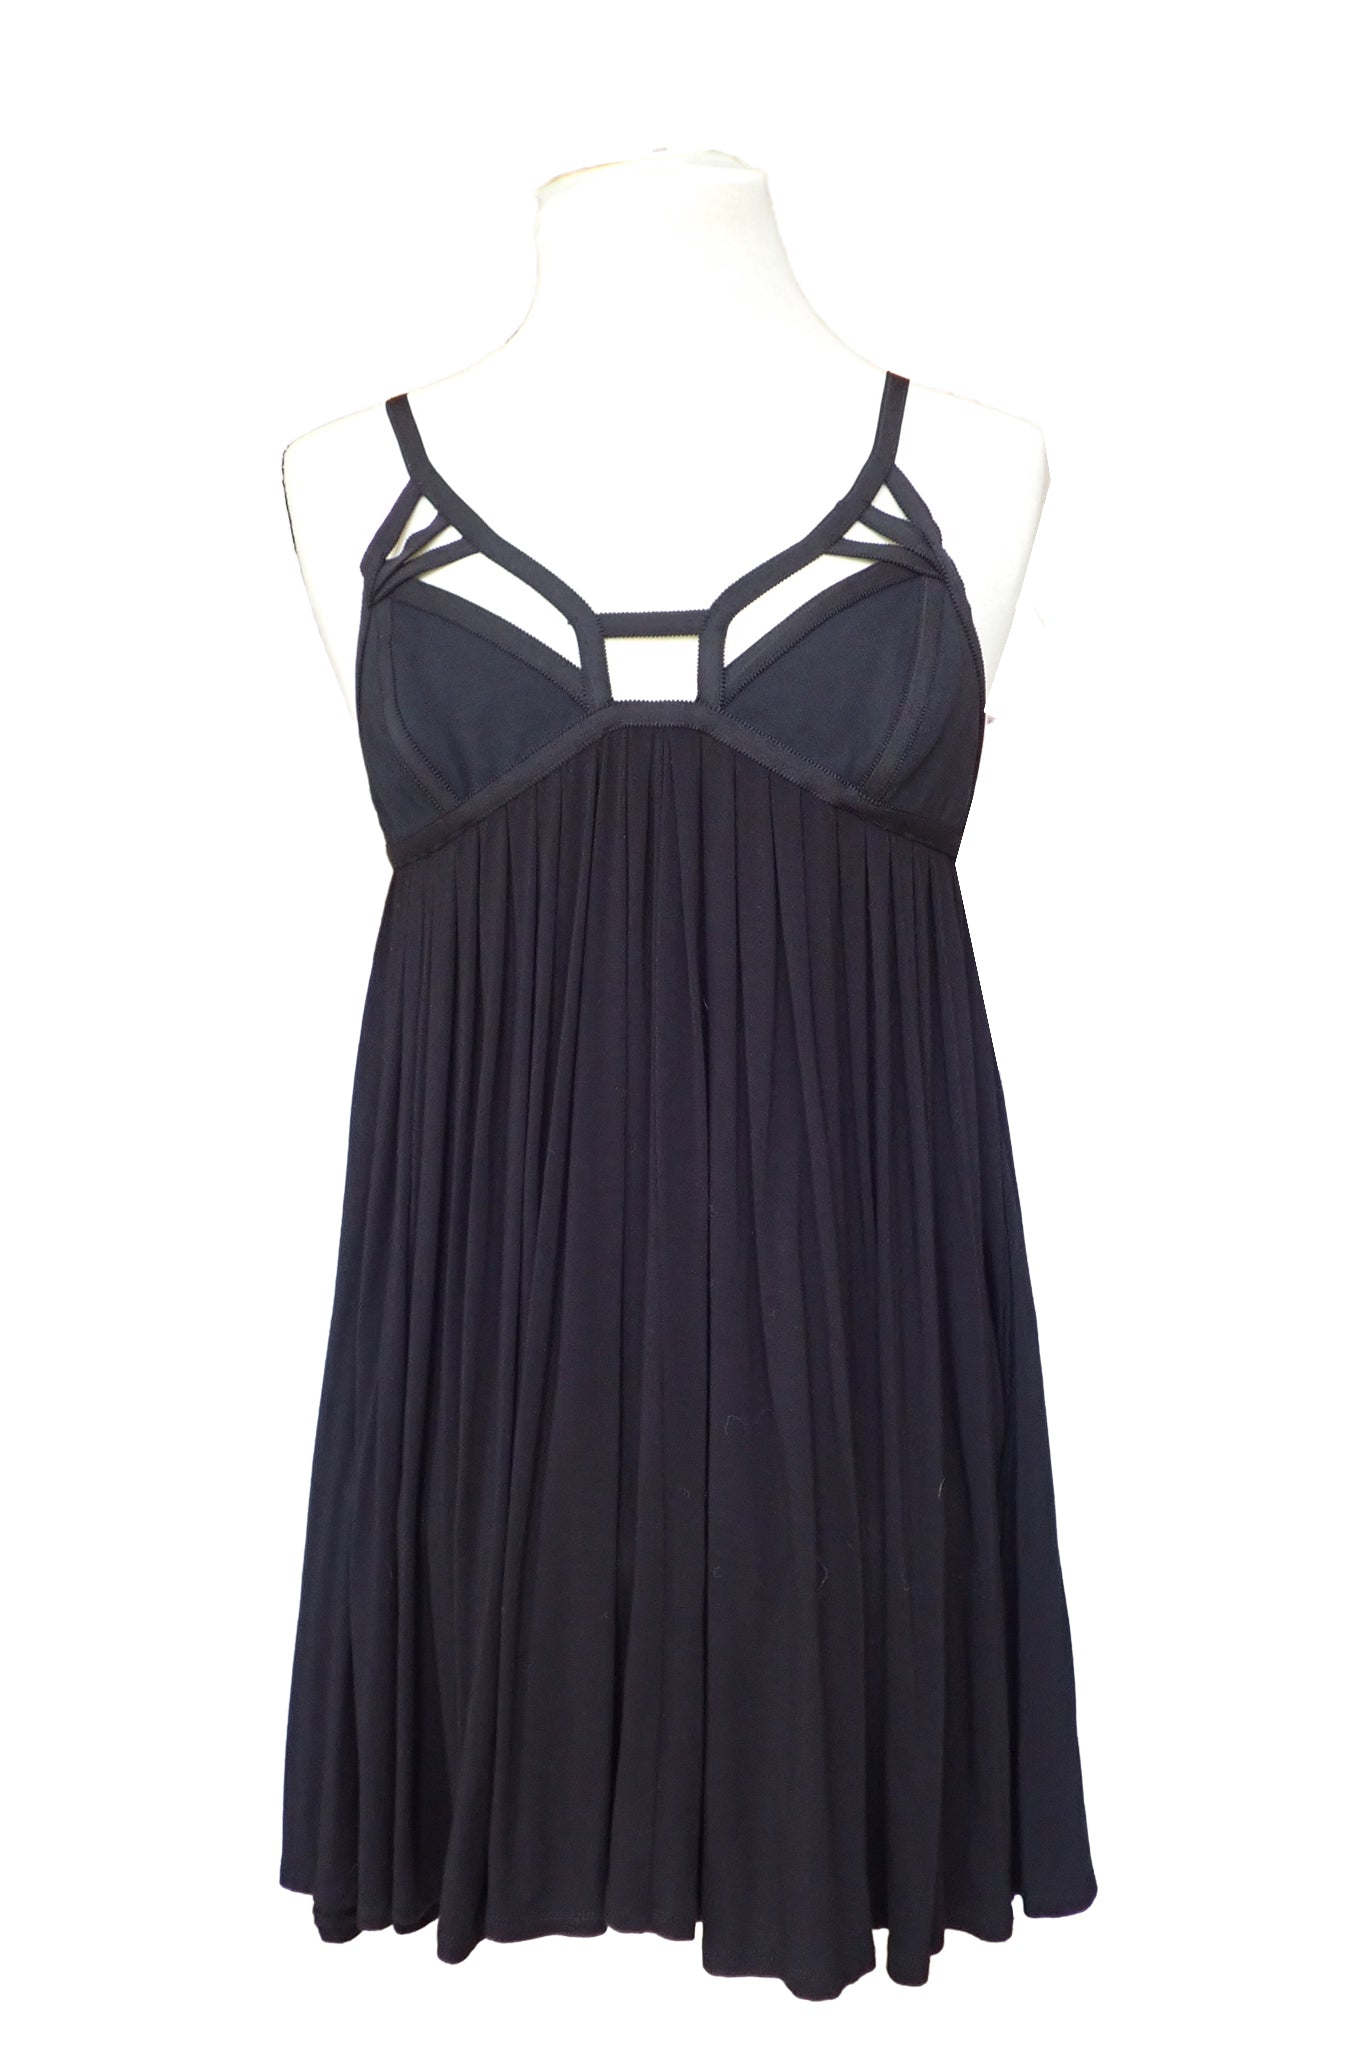 Sass & Bide little black dress front